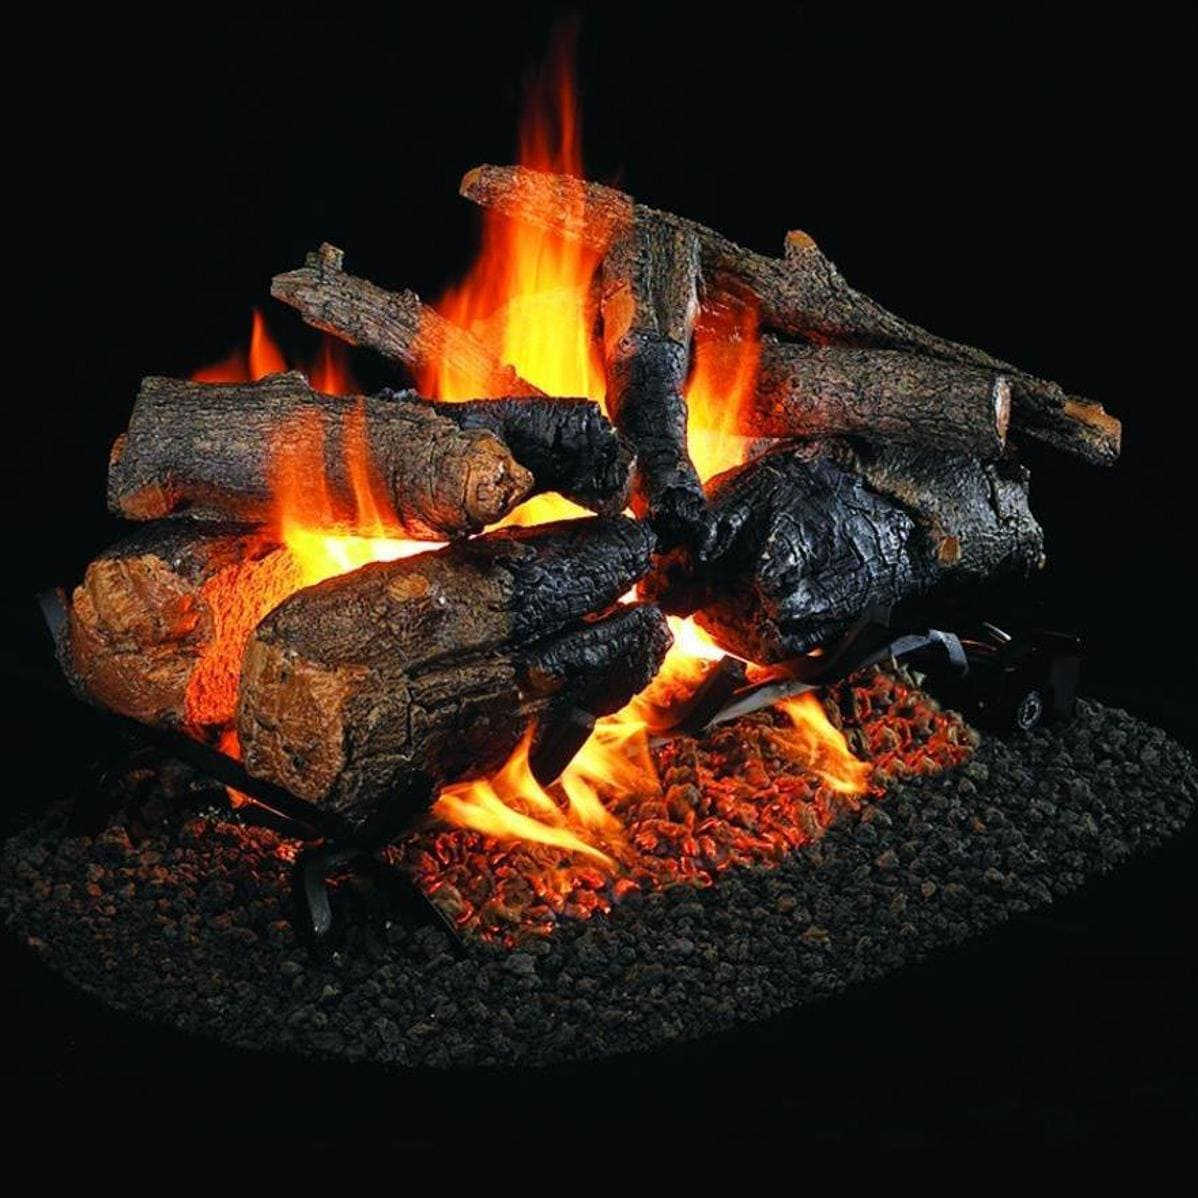 Direct Vent Gas Fireplace Ratings Double Sided Fireplace Gas Logs See Through Gas Fireplace Log